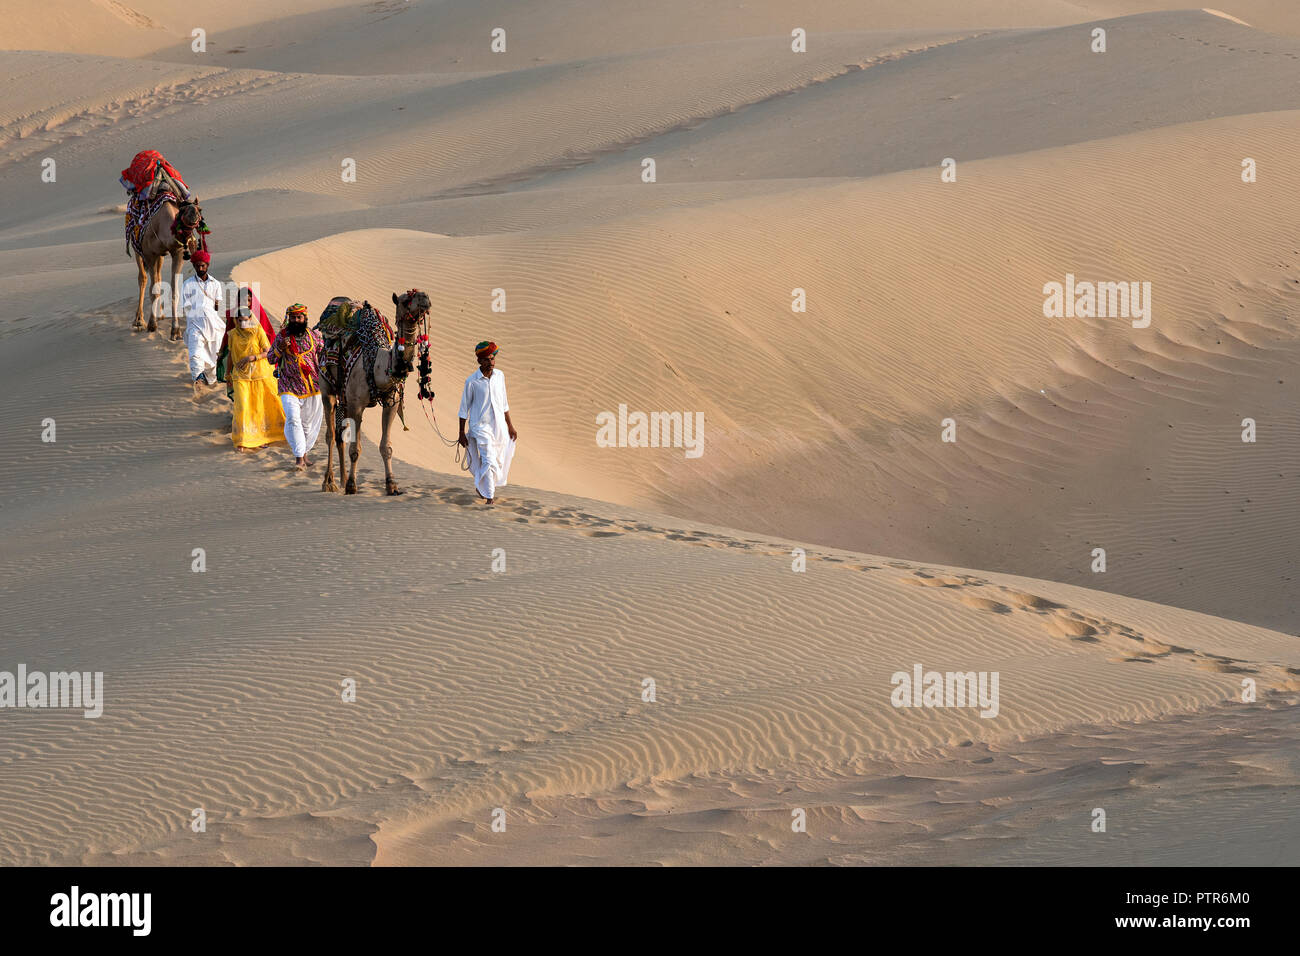 The image of Rajasthani trditional man and woman in sand dunes,  Jaisalmer, Rajasthan, India Stock Photo